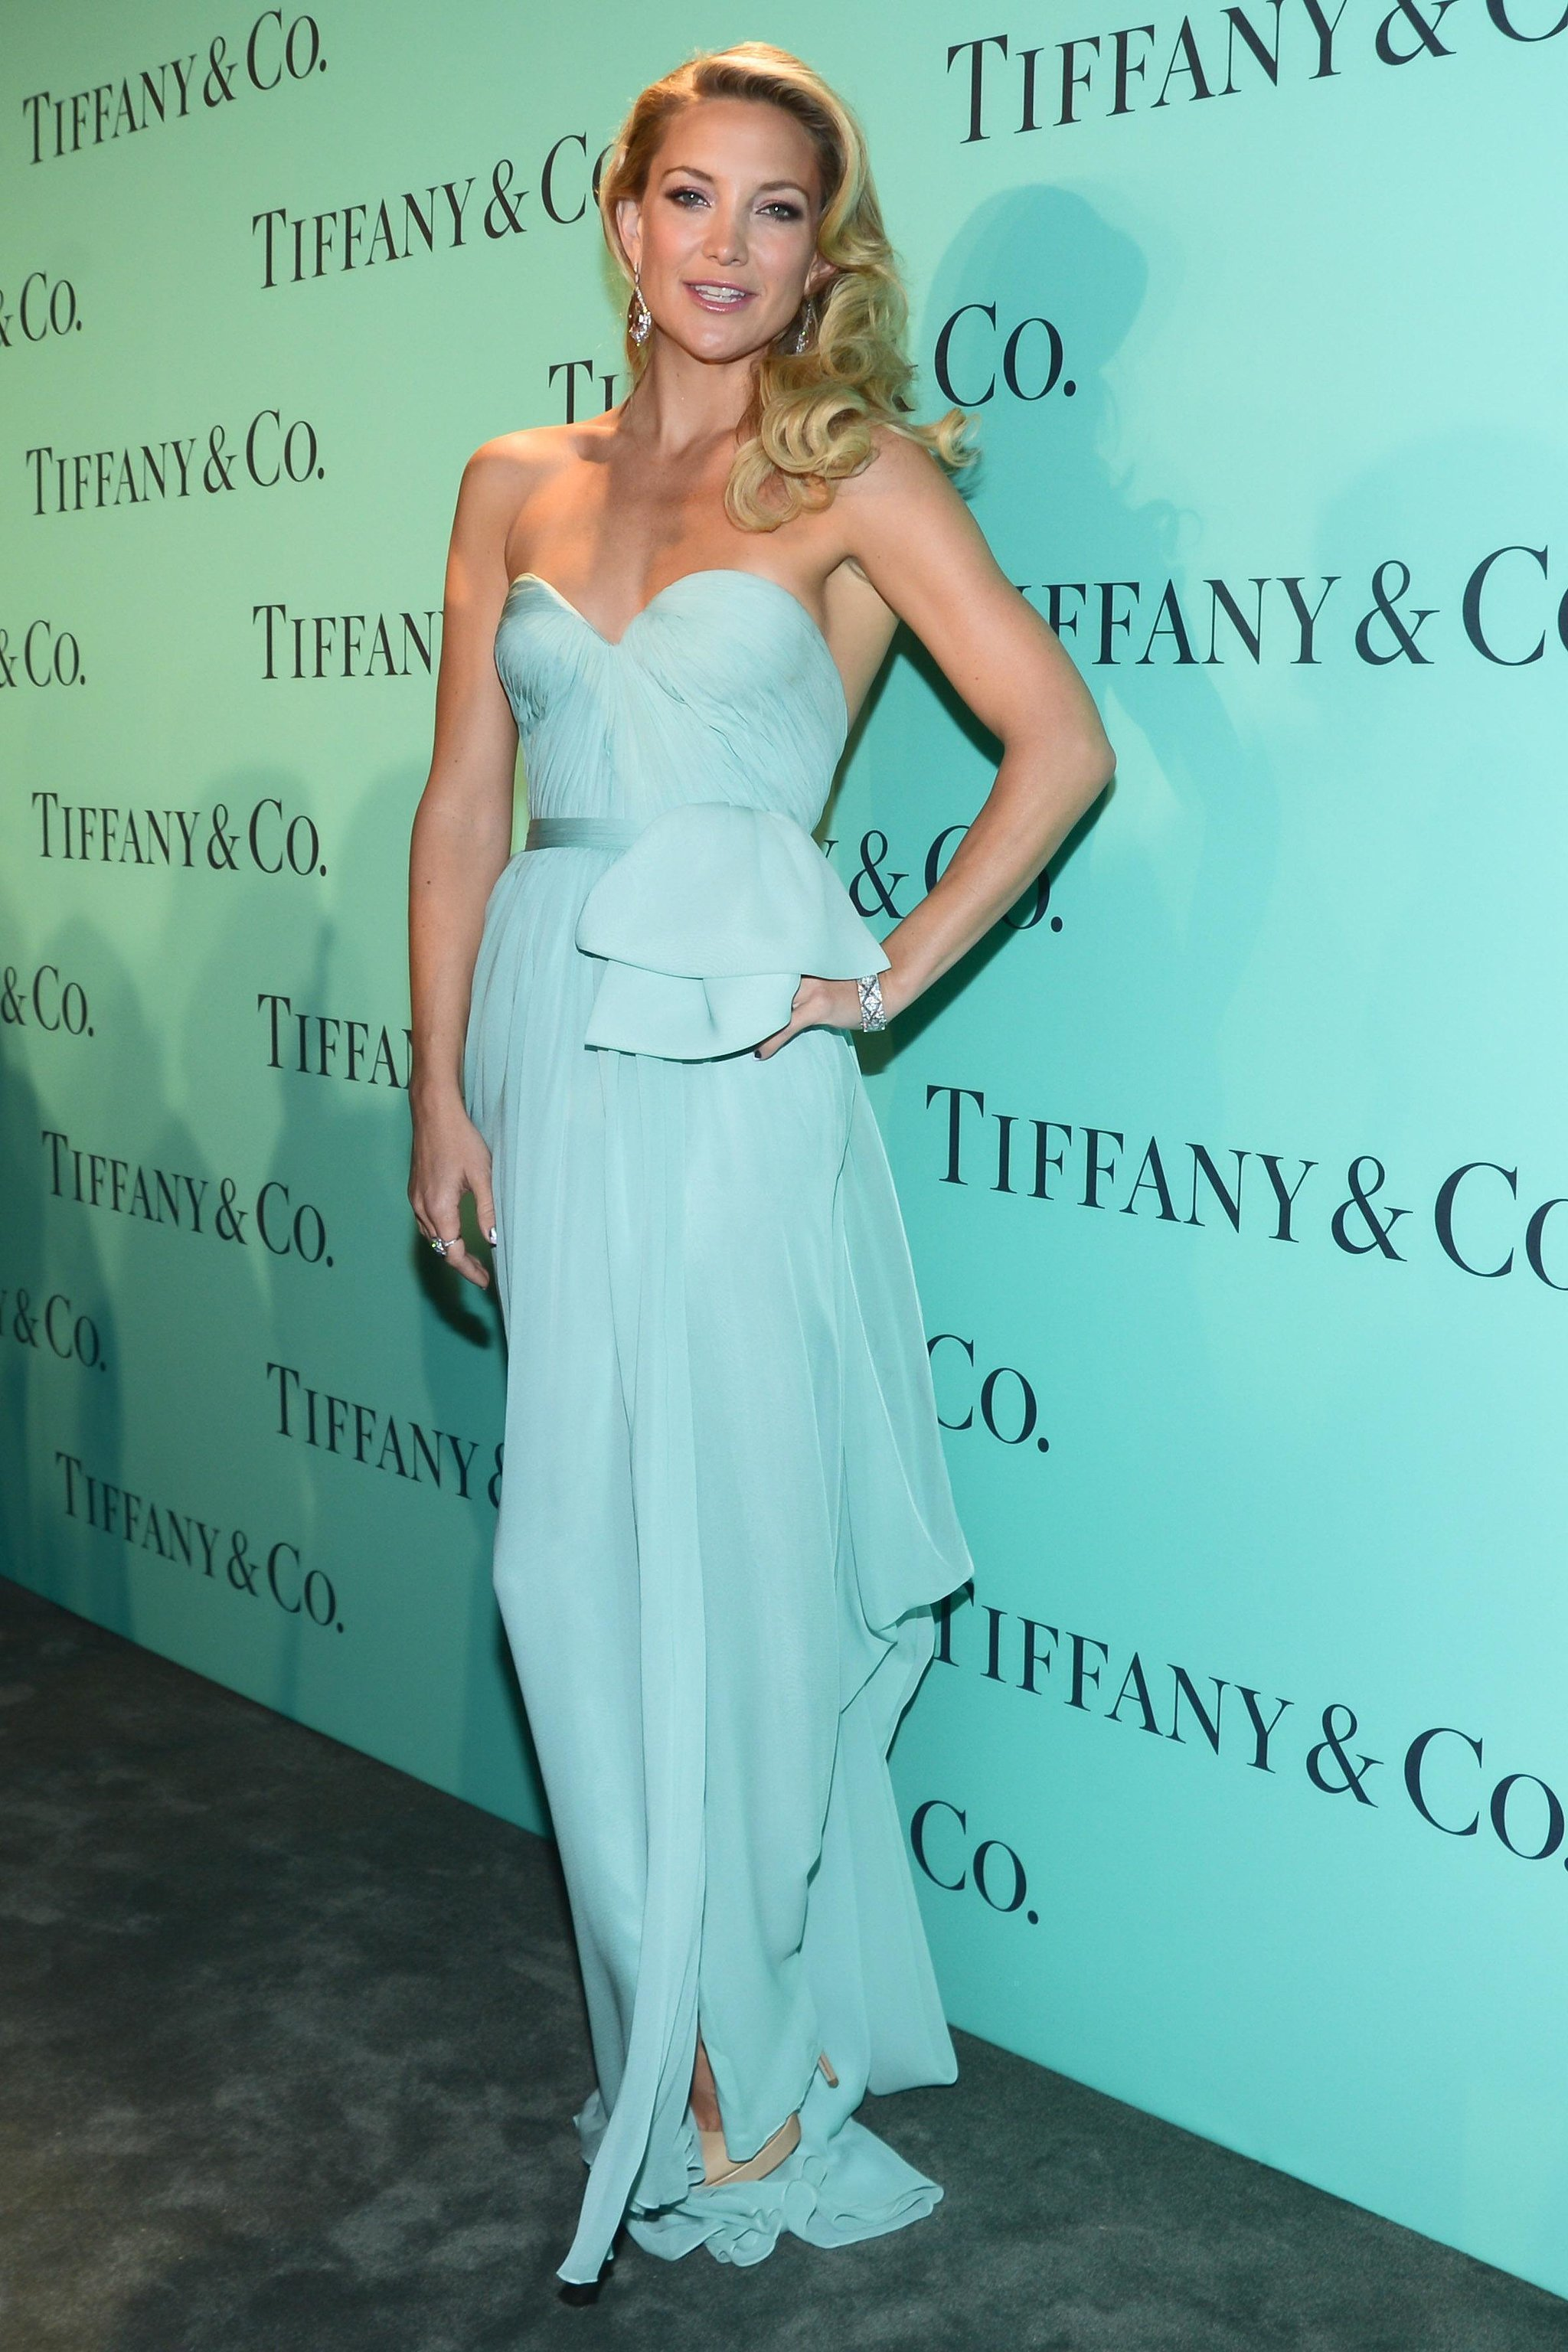 She Was True Tiffany & Co. Blue in a Strapless Reem Acra Gown